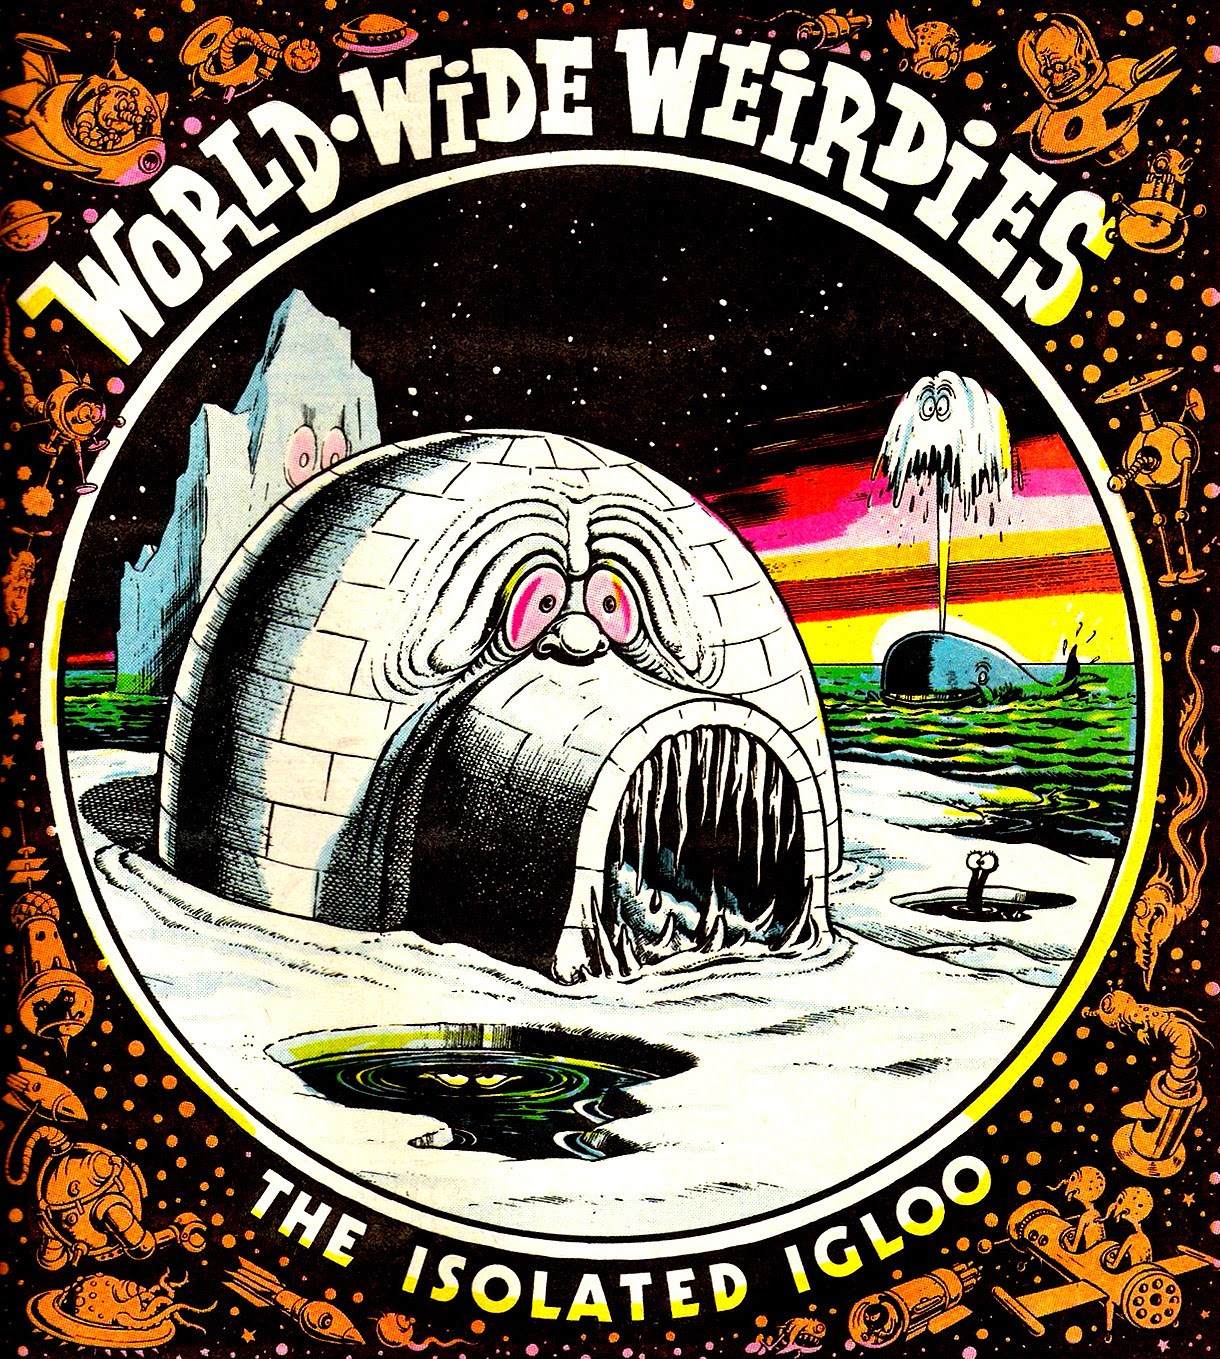 Ken Reid - World Wide Weirdies 25